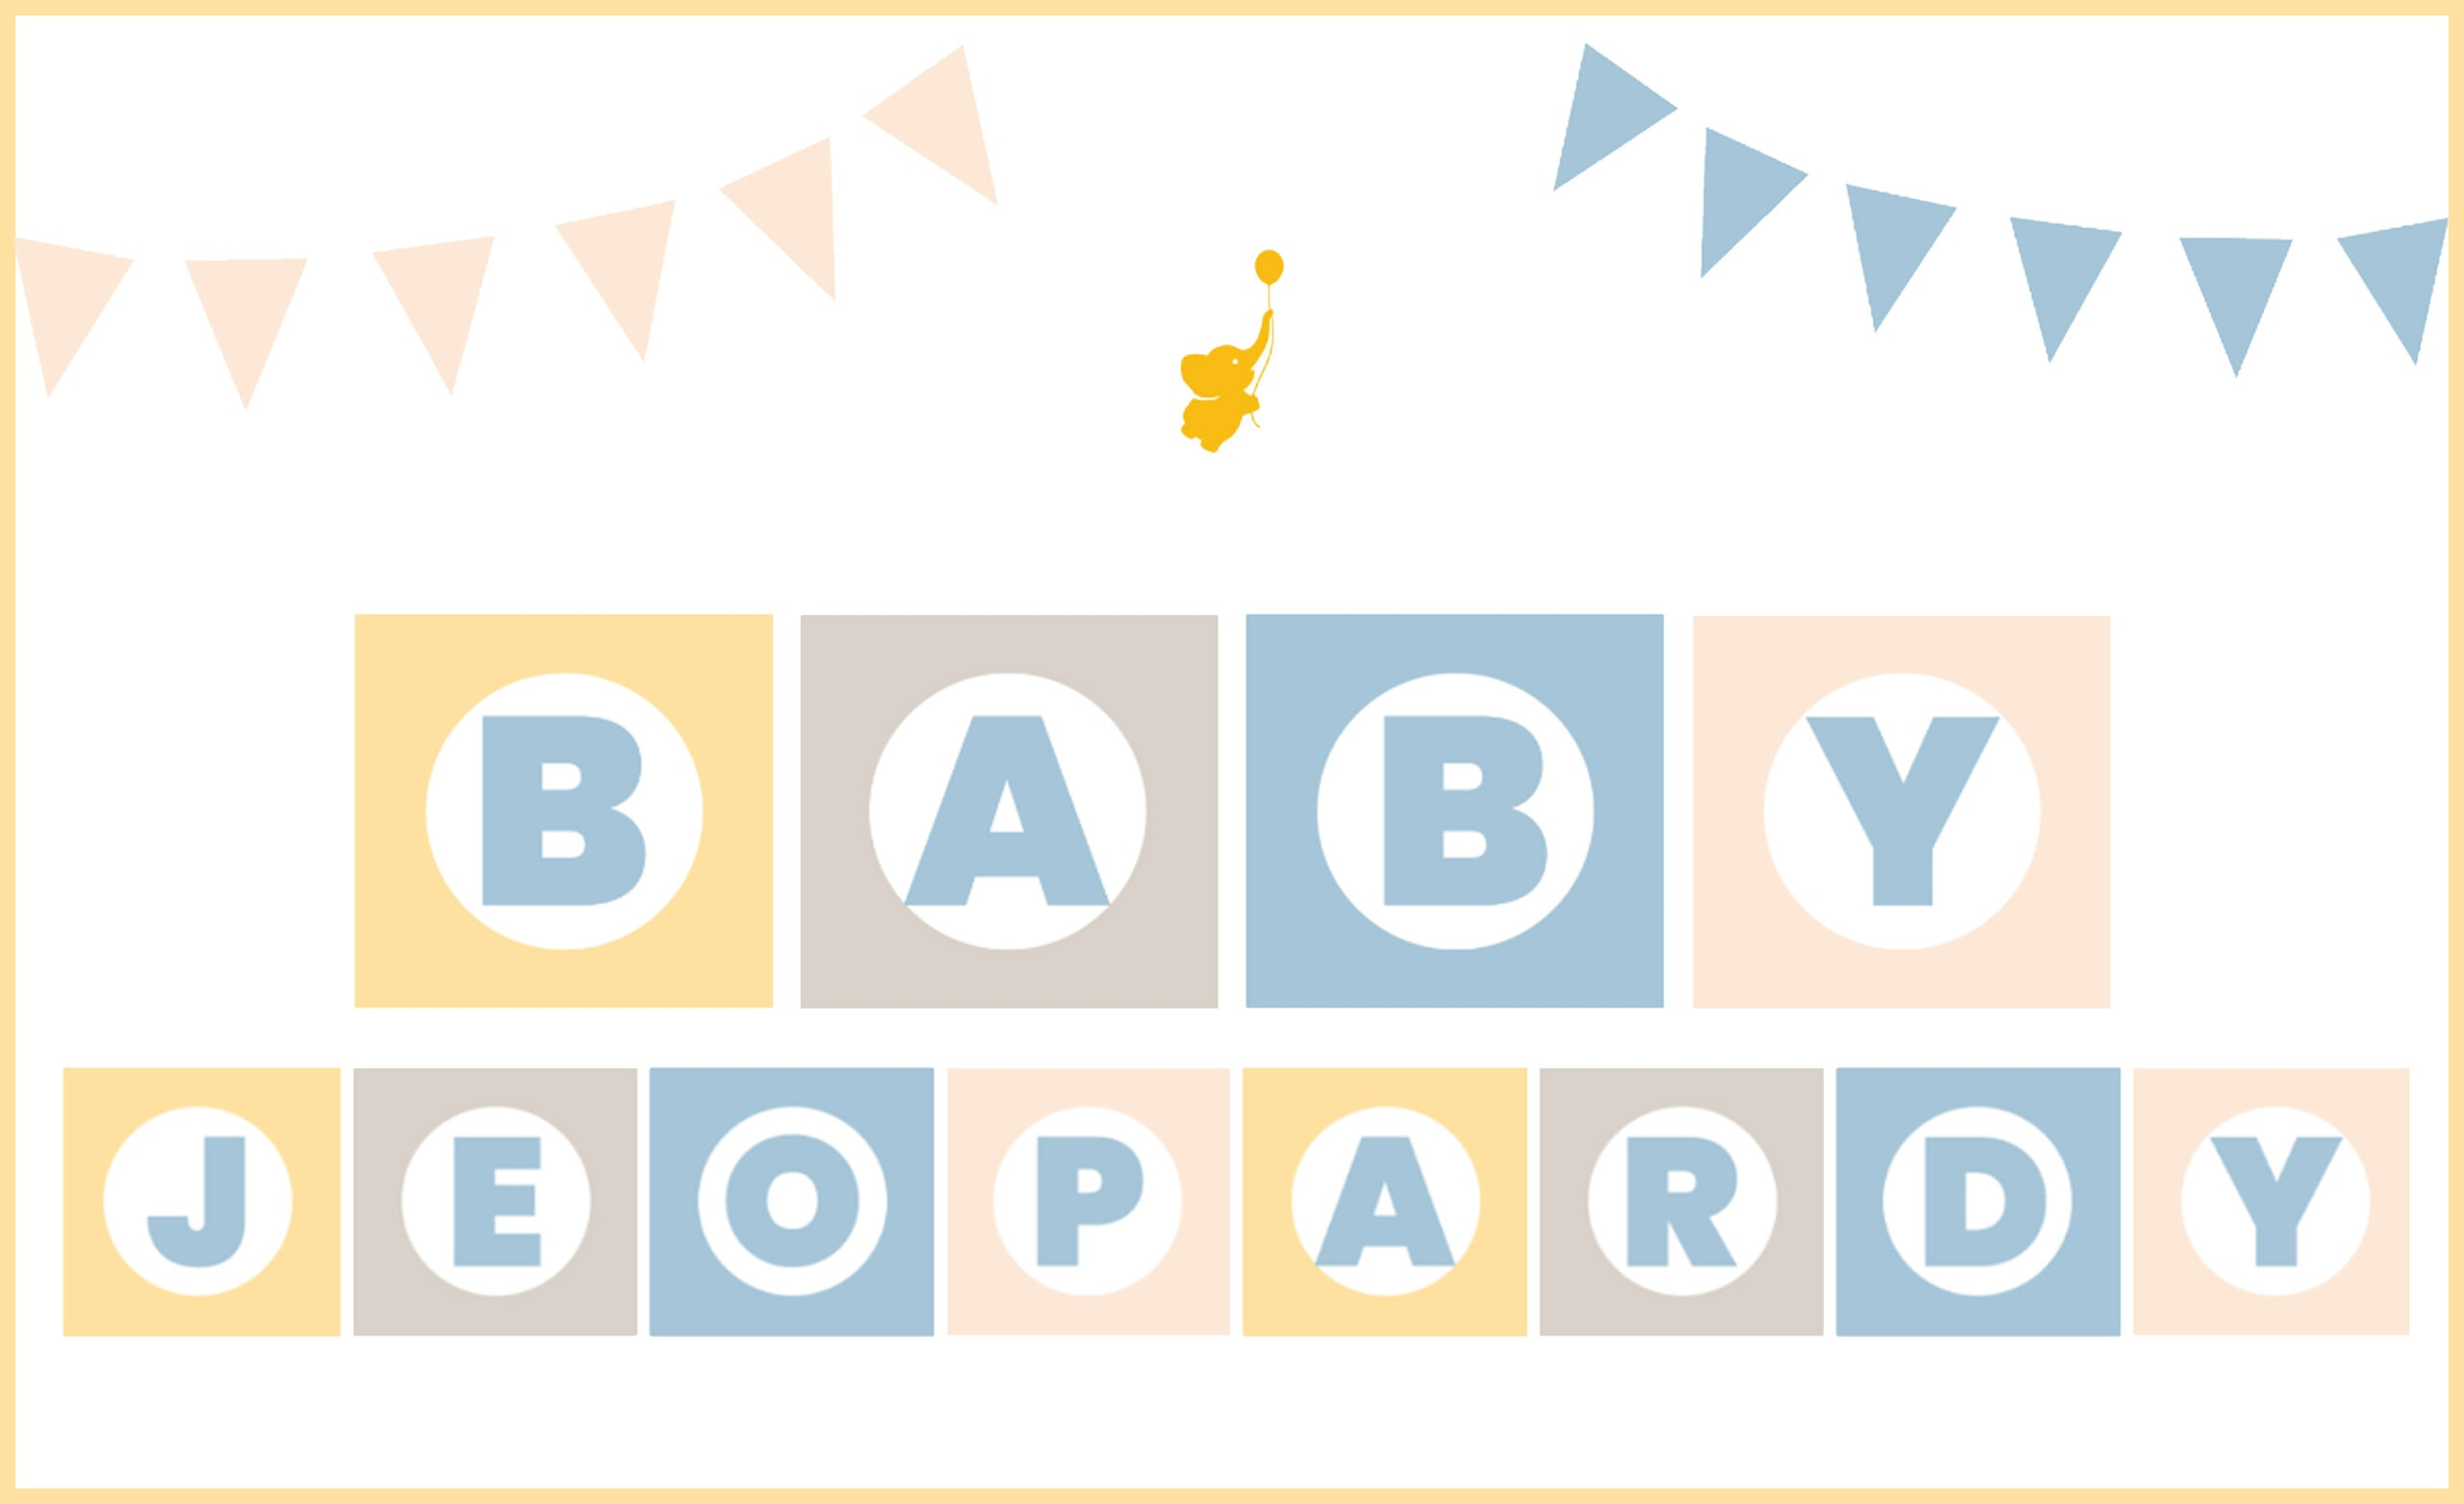 webbabyshower header image baby shower jeopardy questions and answers